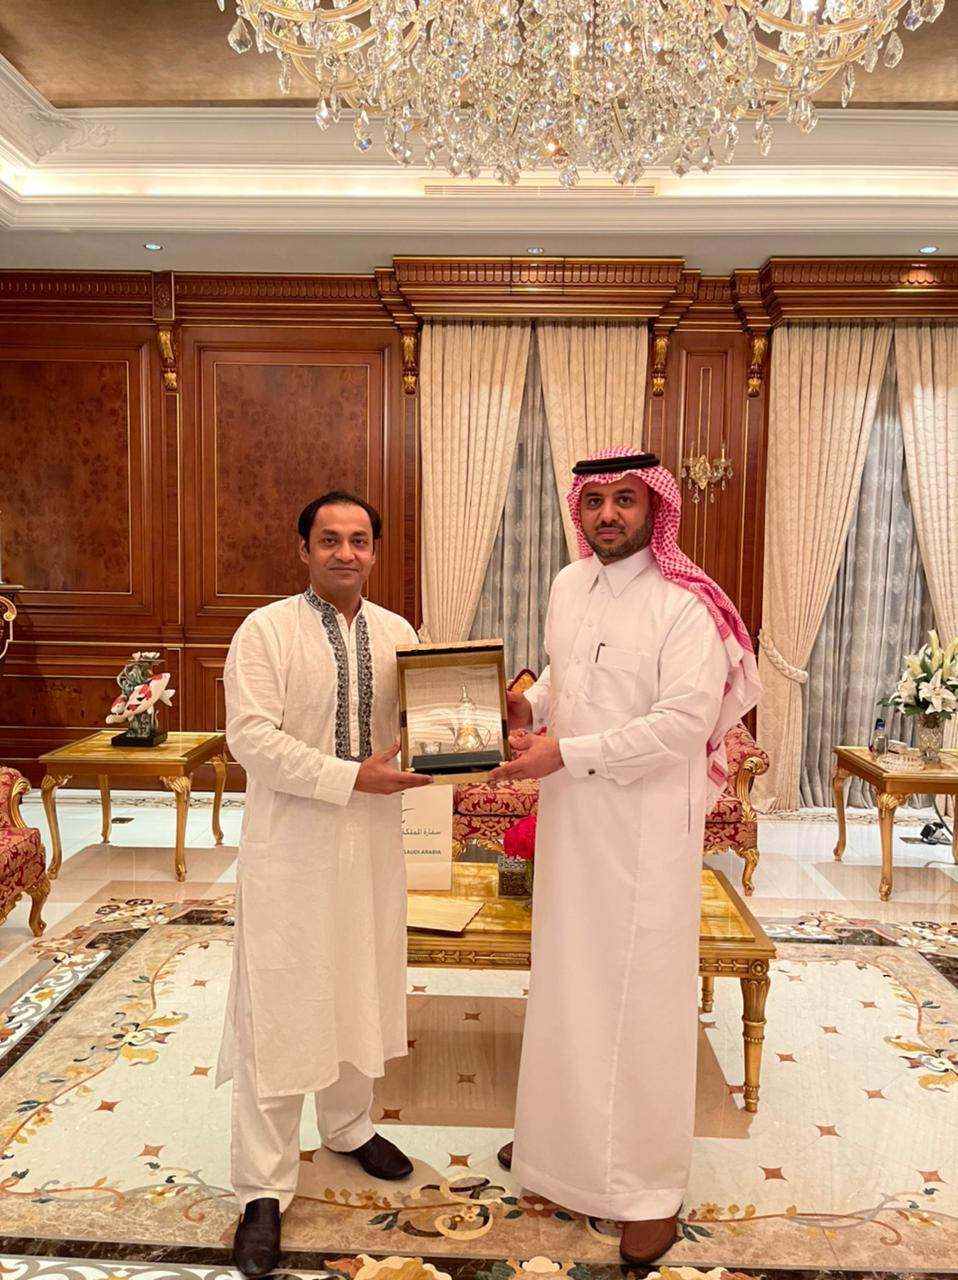 Dinner hosted at my residence on 9th March 2021 for His Excellency Mr. Essa Yousef Essa Alduhailan Ambassador of the Kingdom of Saudi Arabia to Bangladesh.